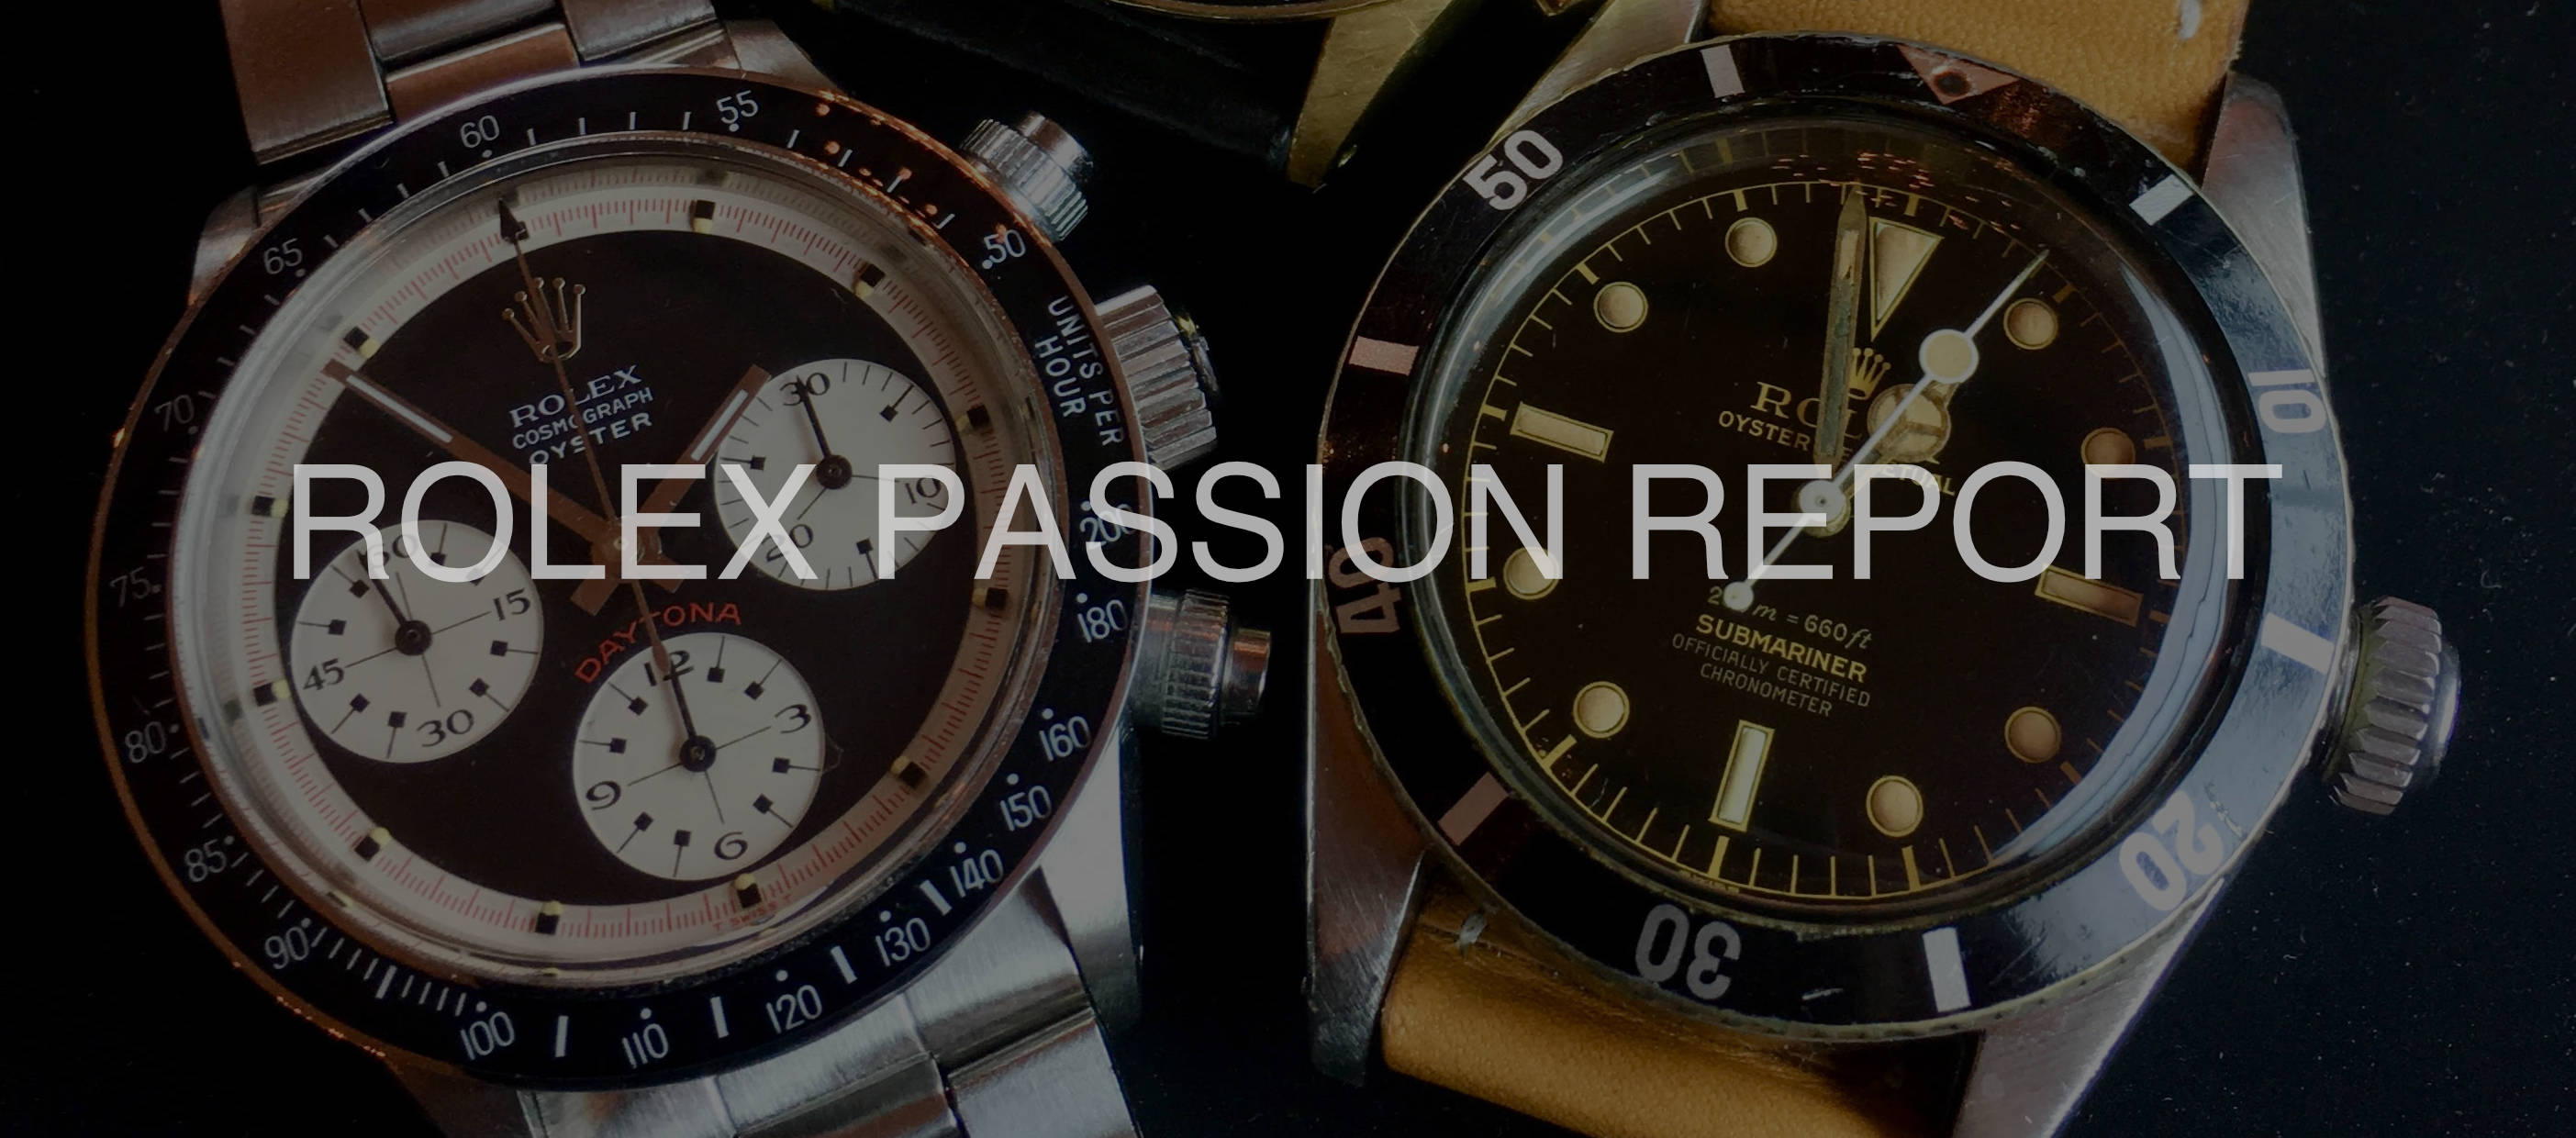 Vintage Rolex and Patek Philippe news on Rolex Passion Report